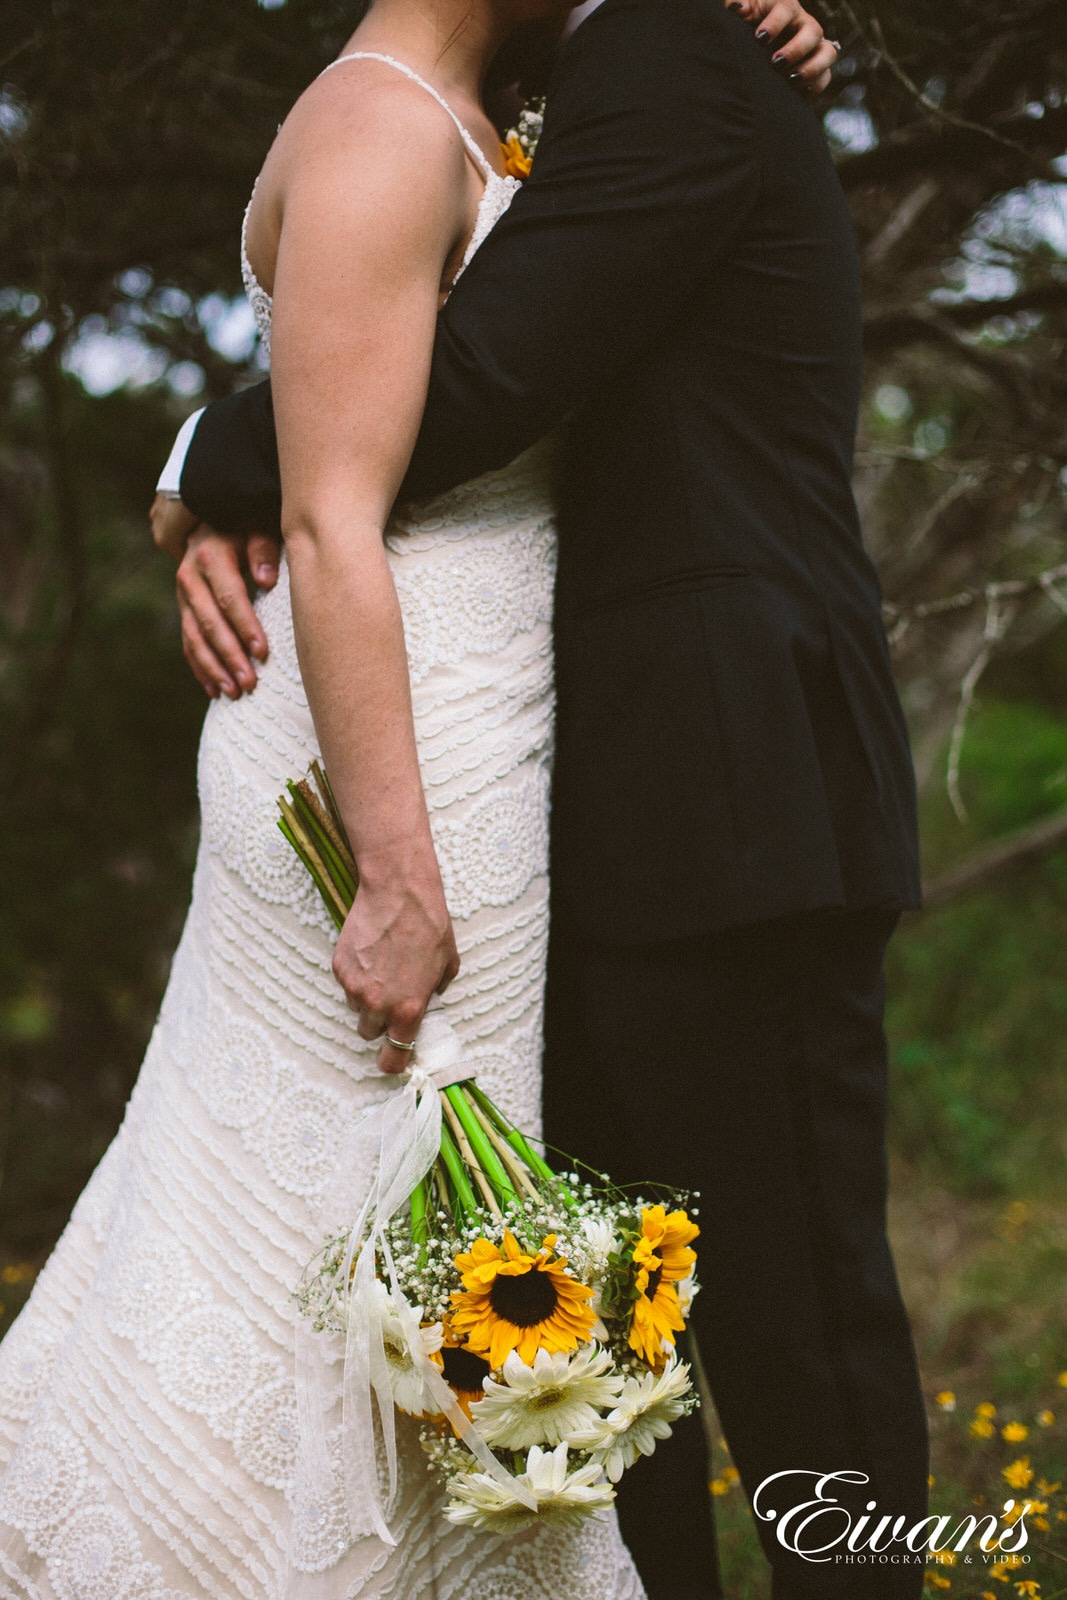 man and woman holding bouquet of flowers